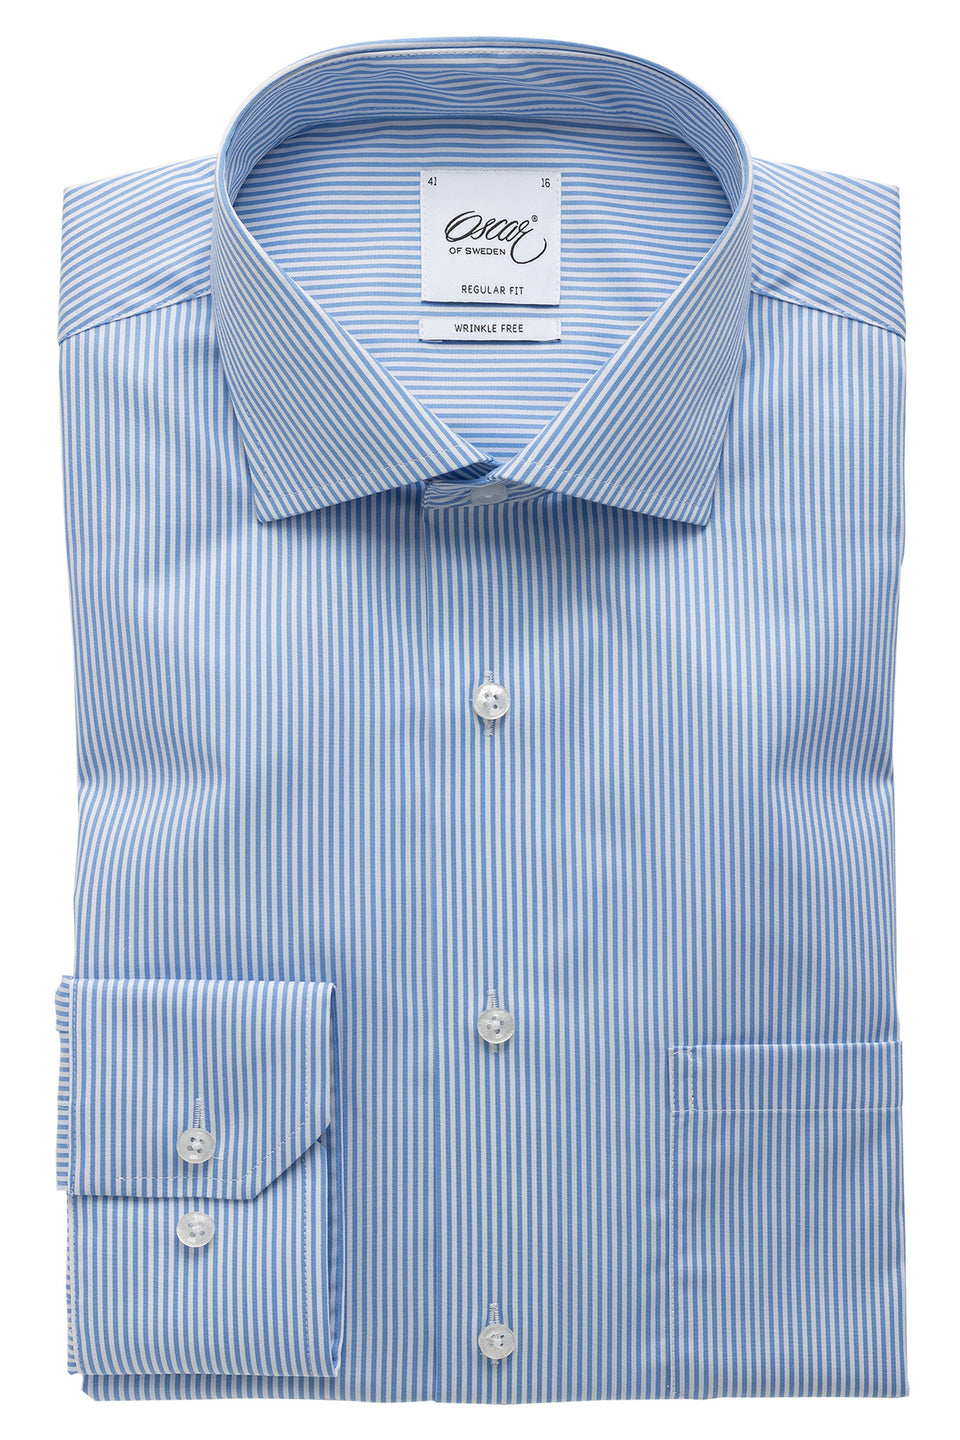 Lightblue striped regular fit shirt